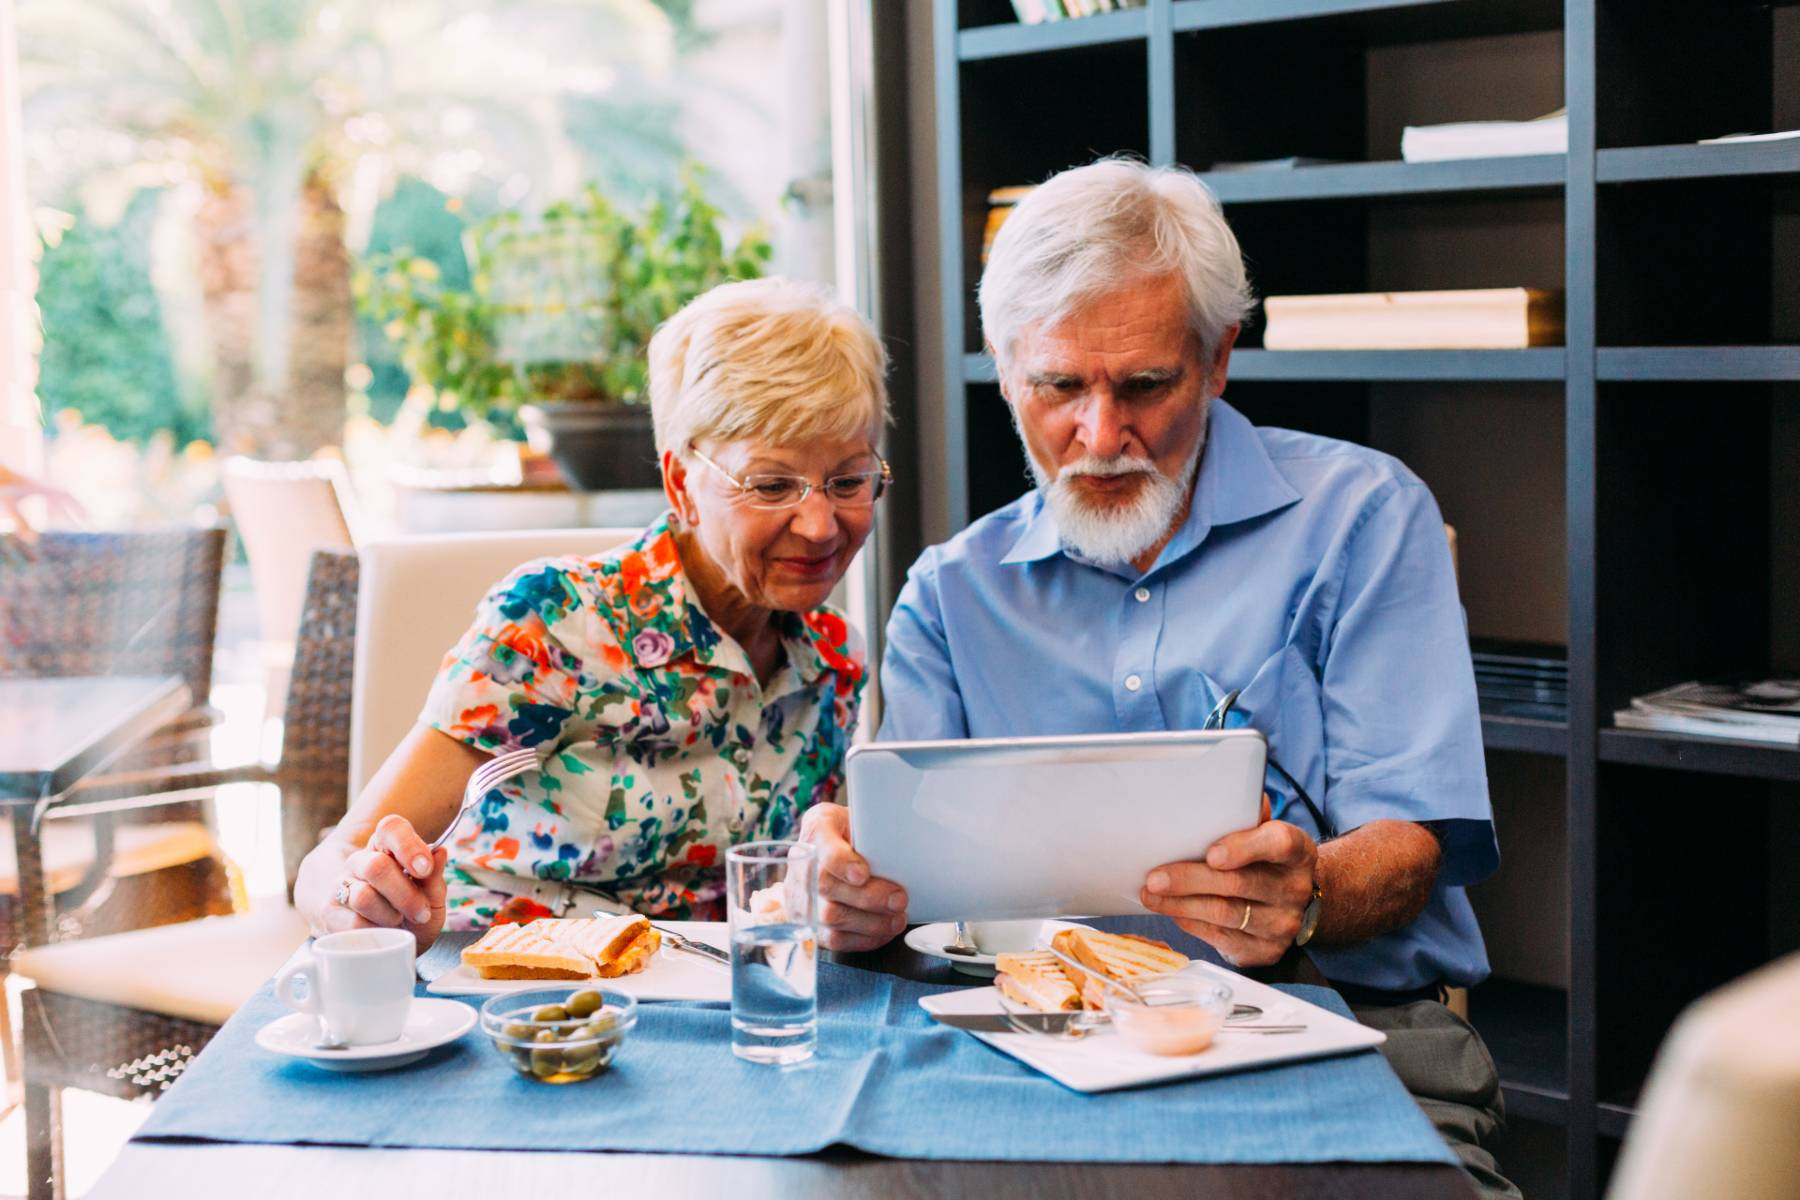 A senior couple enjoy breakfast and look at an ipad or tablet together